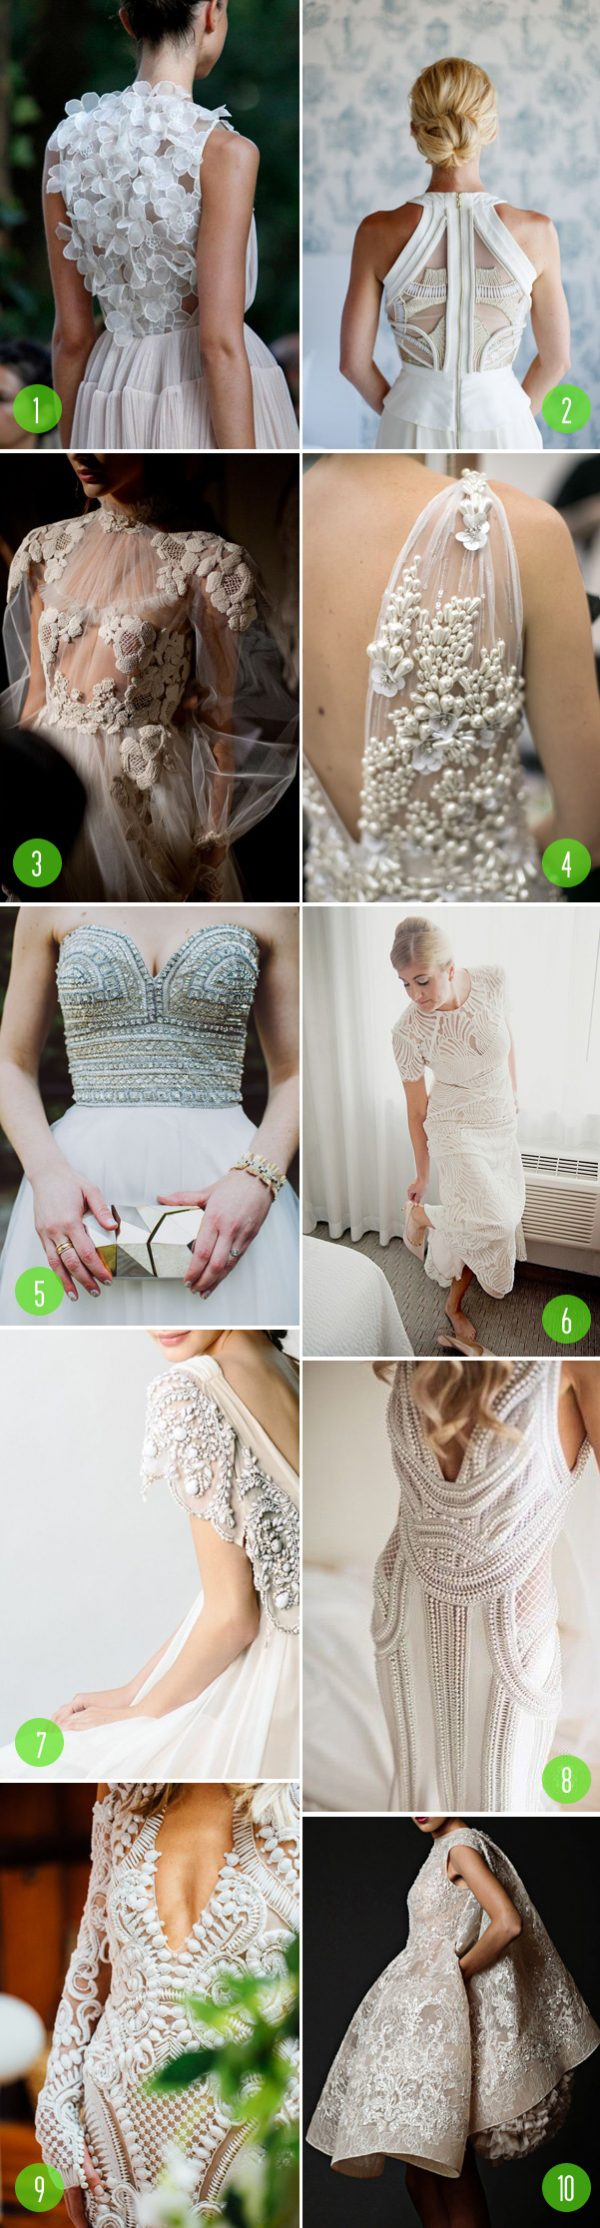 Top 10: Wedding dress details 3